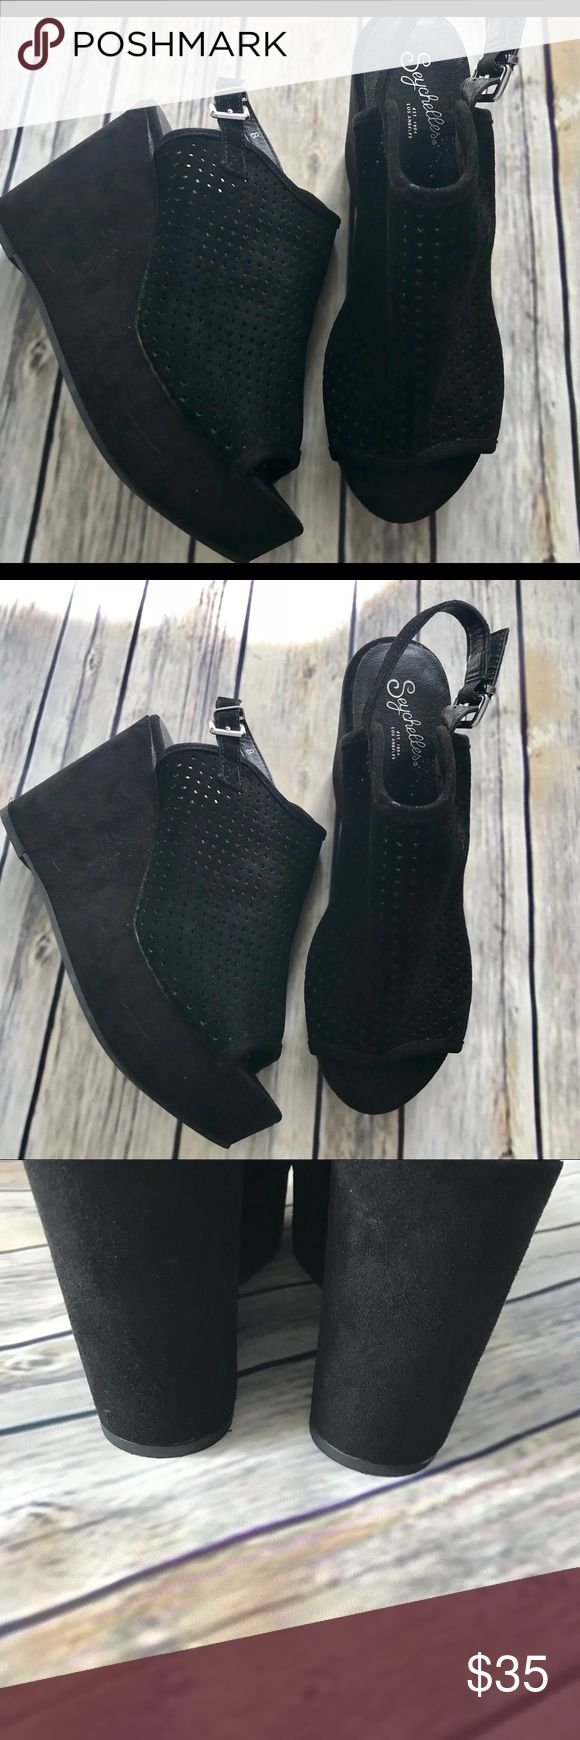 Seychelles Wedges Beautiful suede perforated slingback wedges. Worn once and look fantastic. Seychelles Shoes Wedges